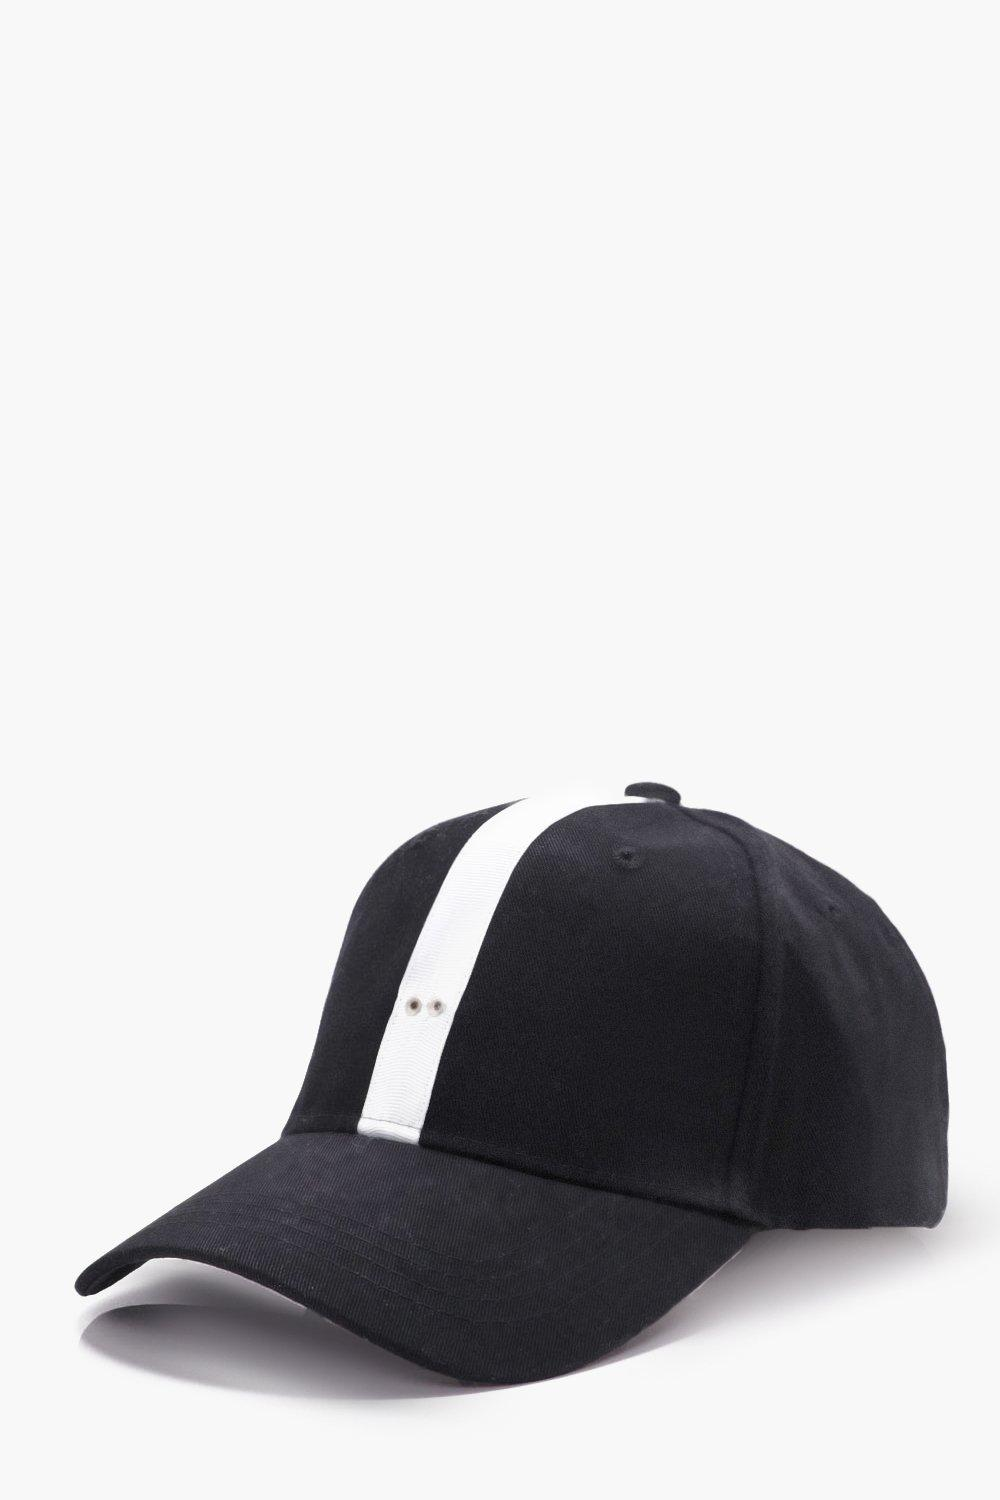 Stripe Cap - black - Grosgrain Stripe Cap - black